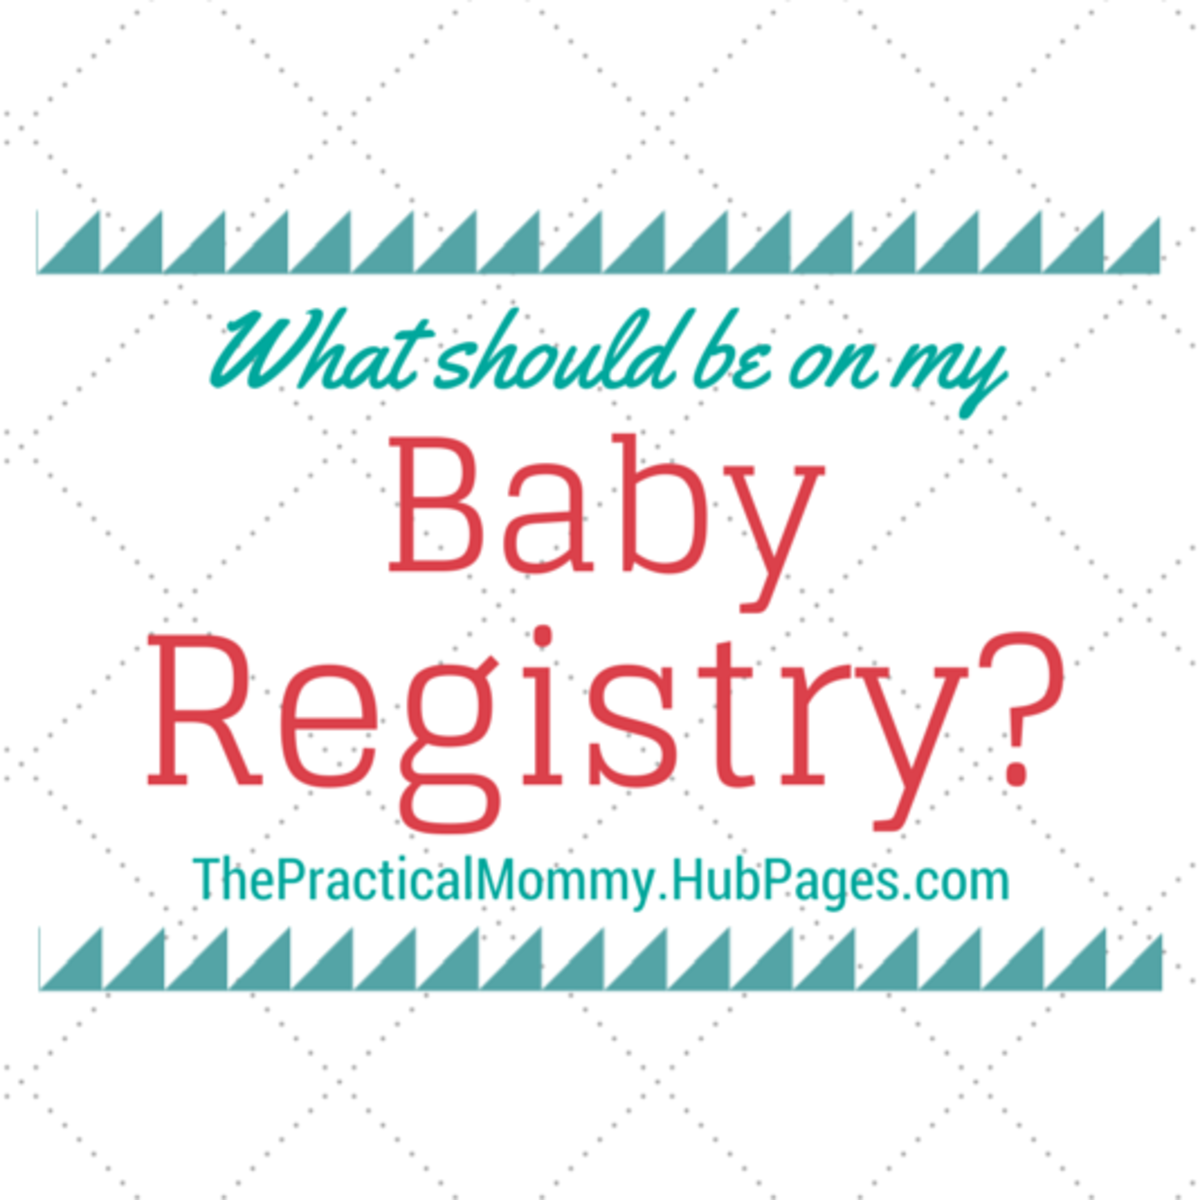 What Should I Put on My Baby Registry?